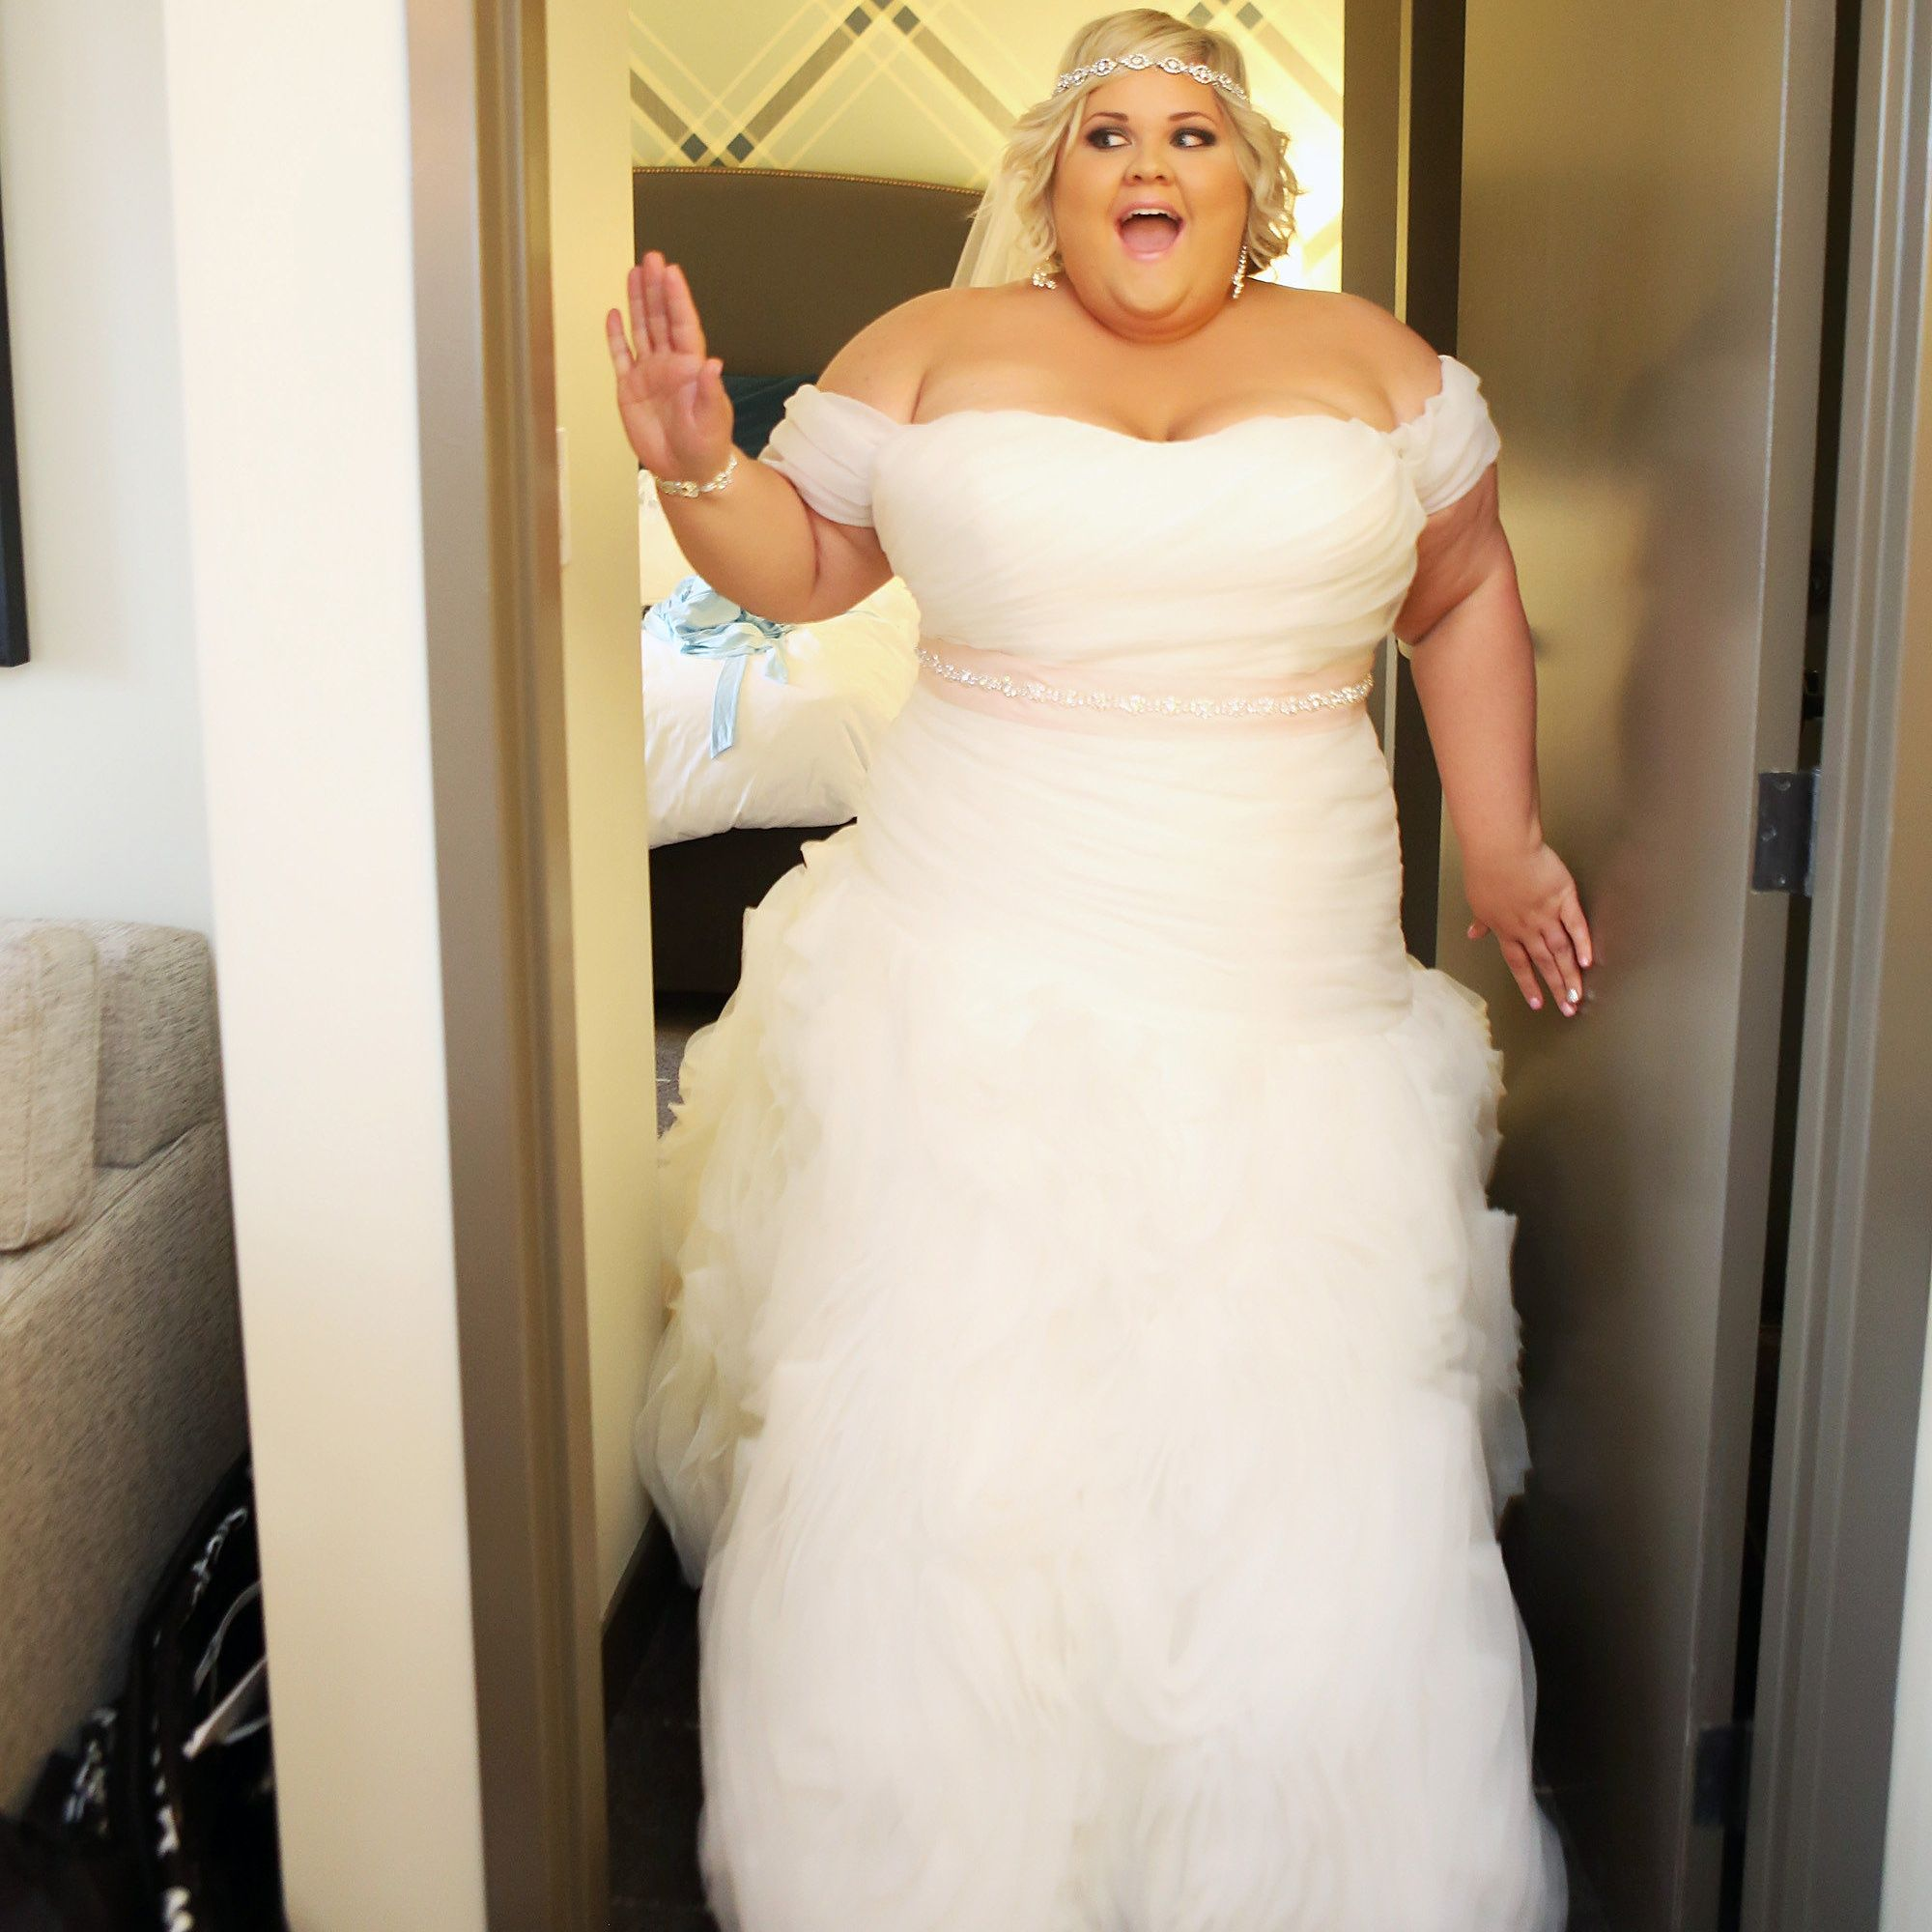 Plus Size Curvy Bride Wedding Bridesmaids Plus Size Fashion